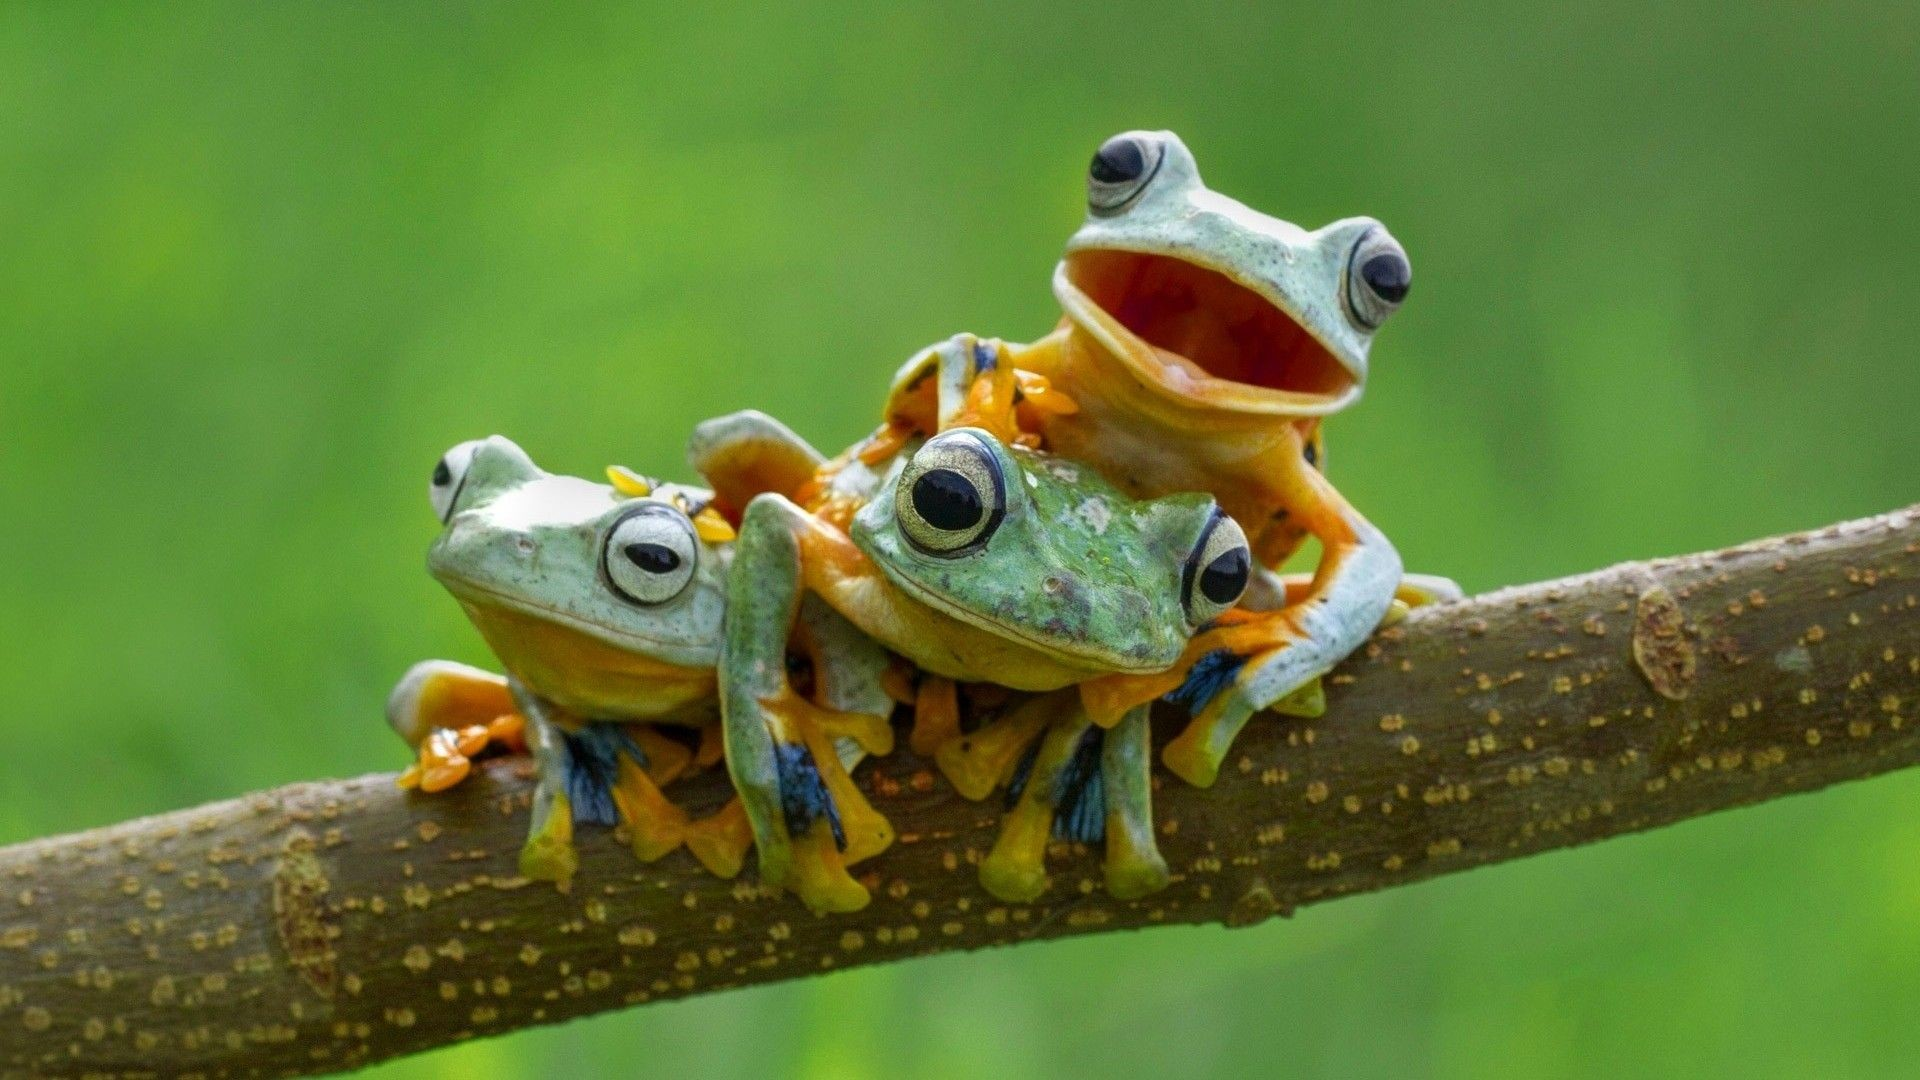 Res: 1920x1080, Frogs images Frog Wallpaper! HD wallpaper and background photos 1920×1080 Frog  Wallpaper (